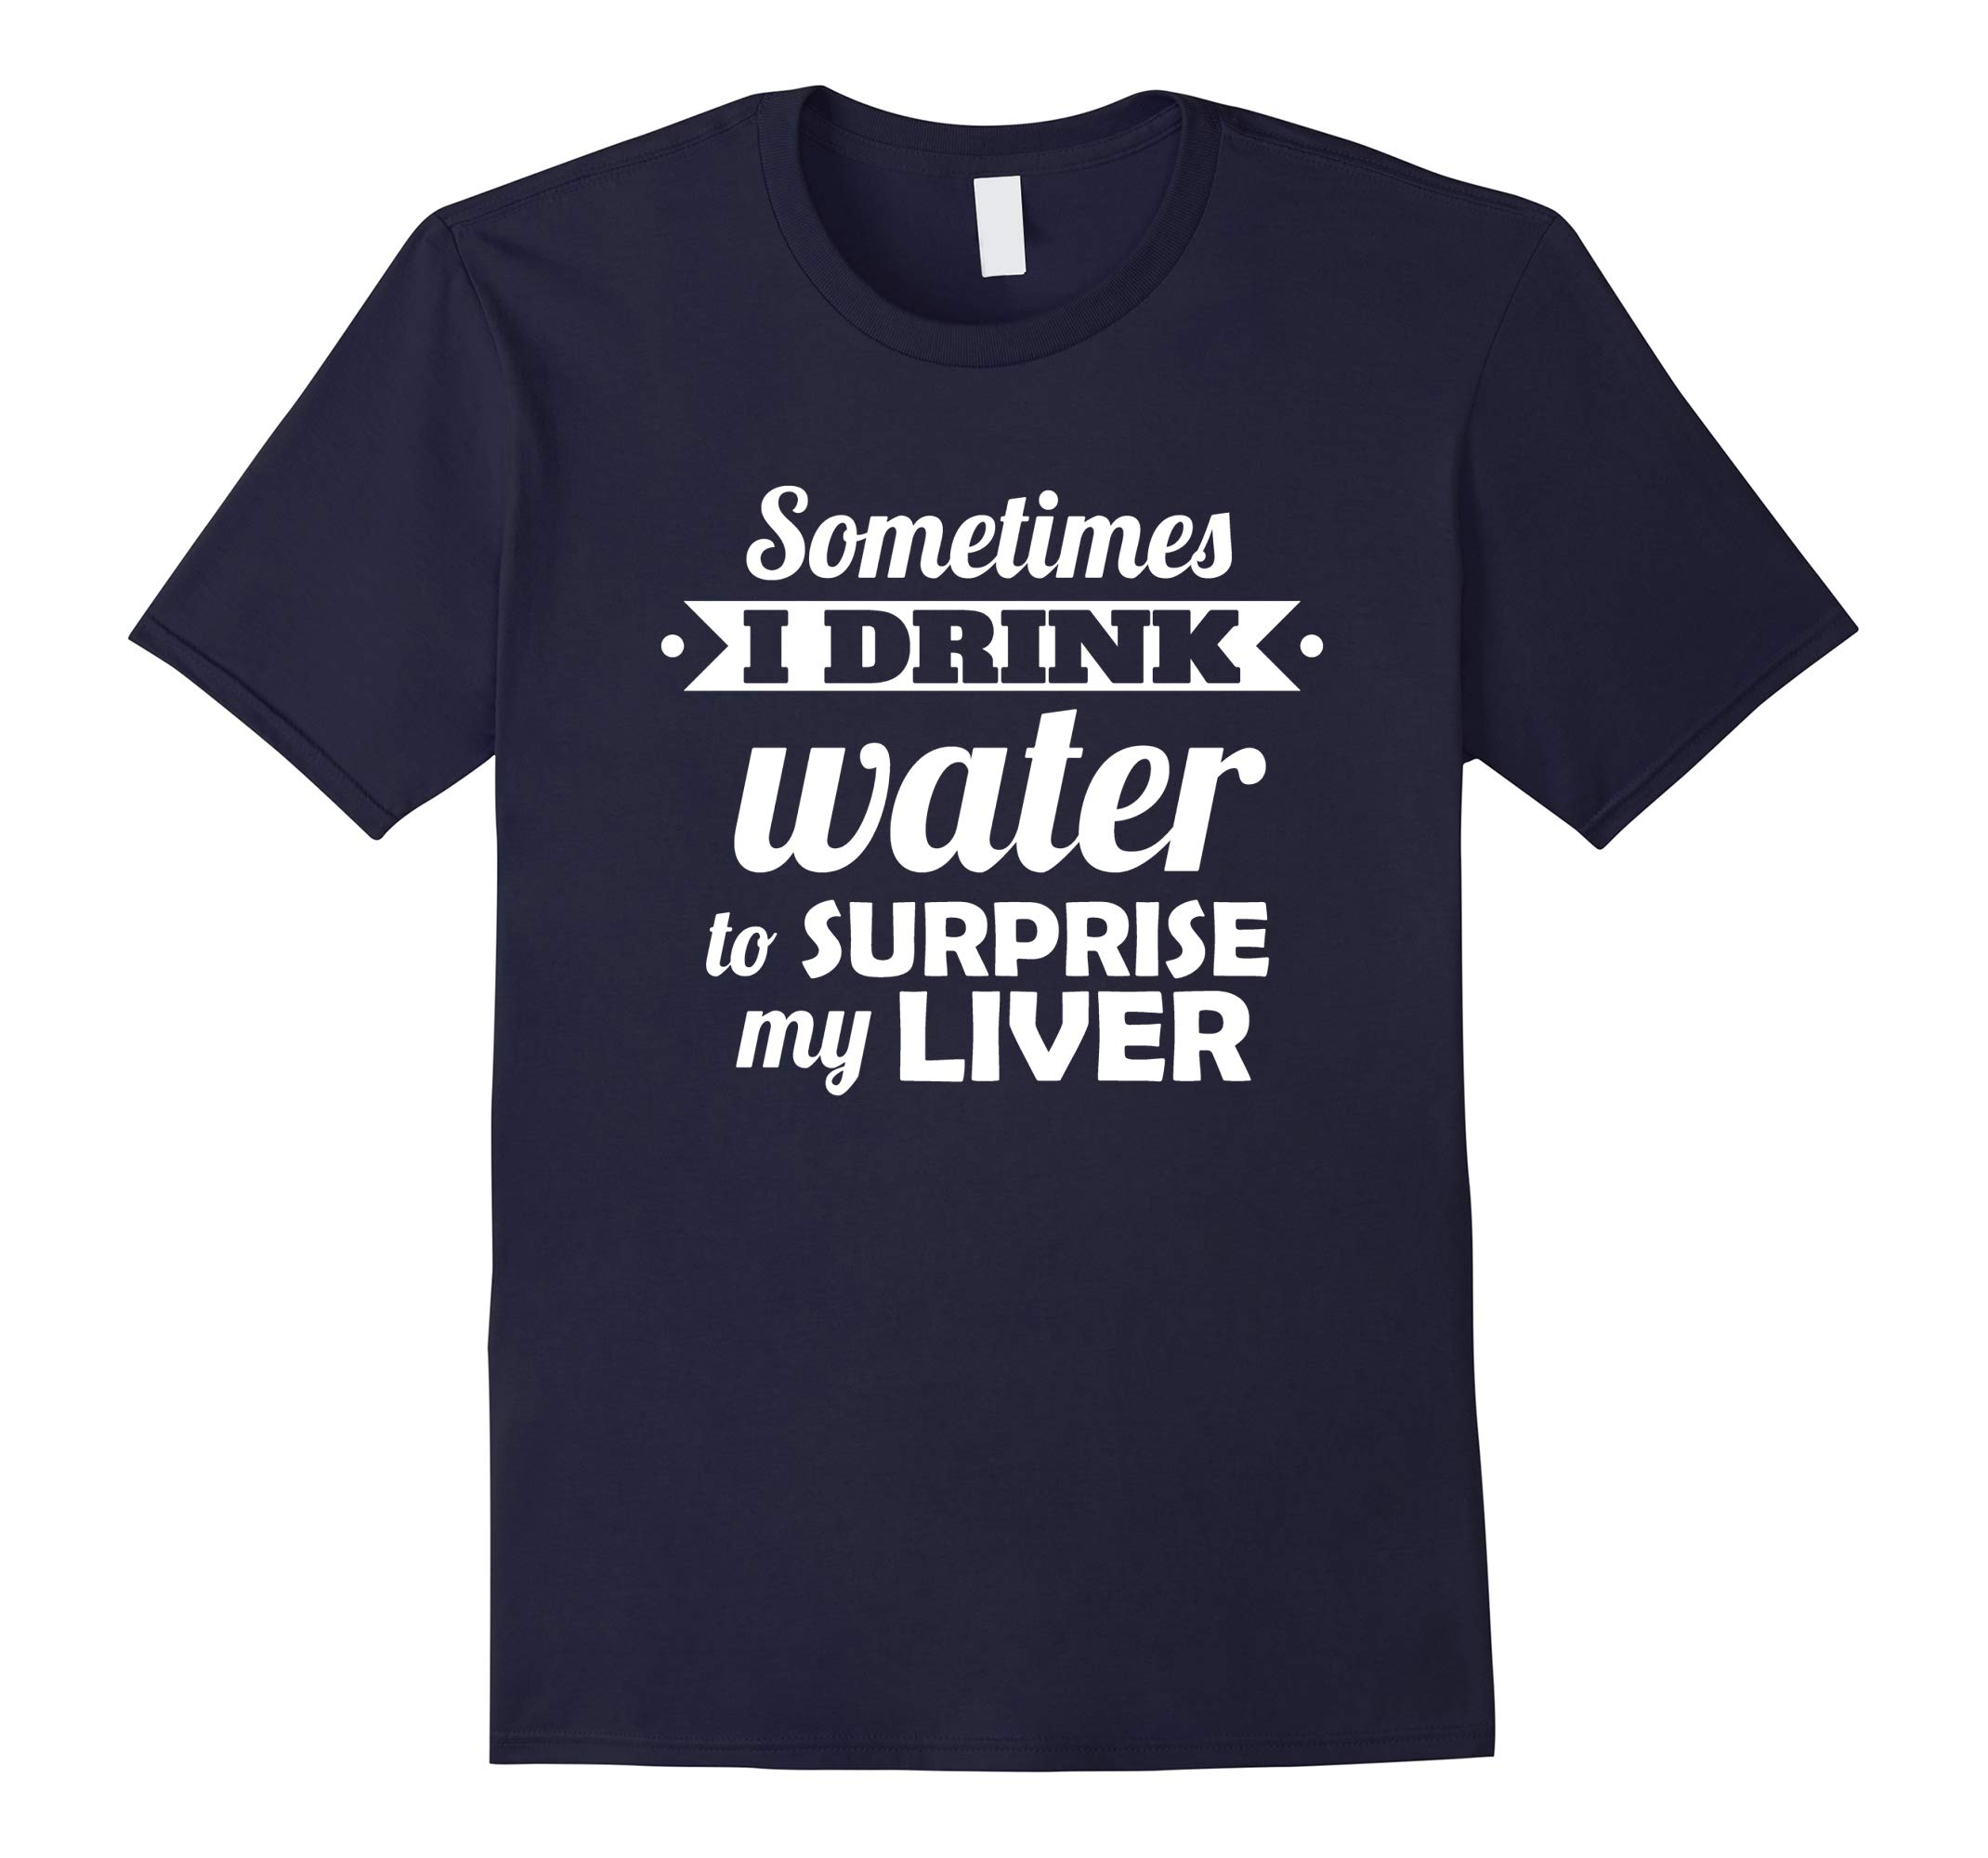 Funny alcohol TShirt: I surprise my liver. Beer lover Shirt-RT